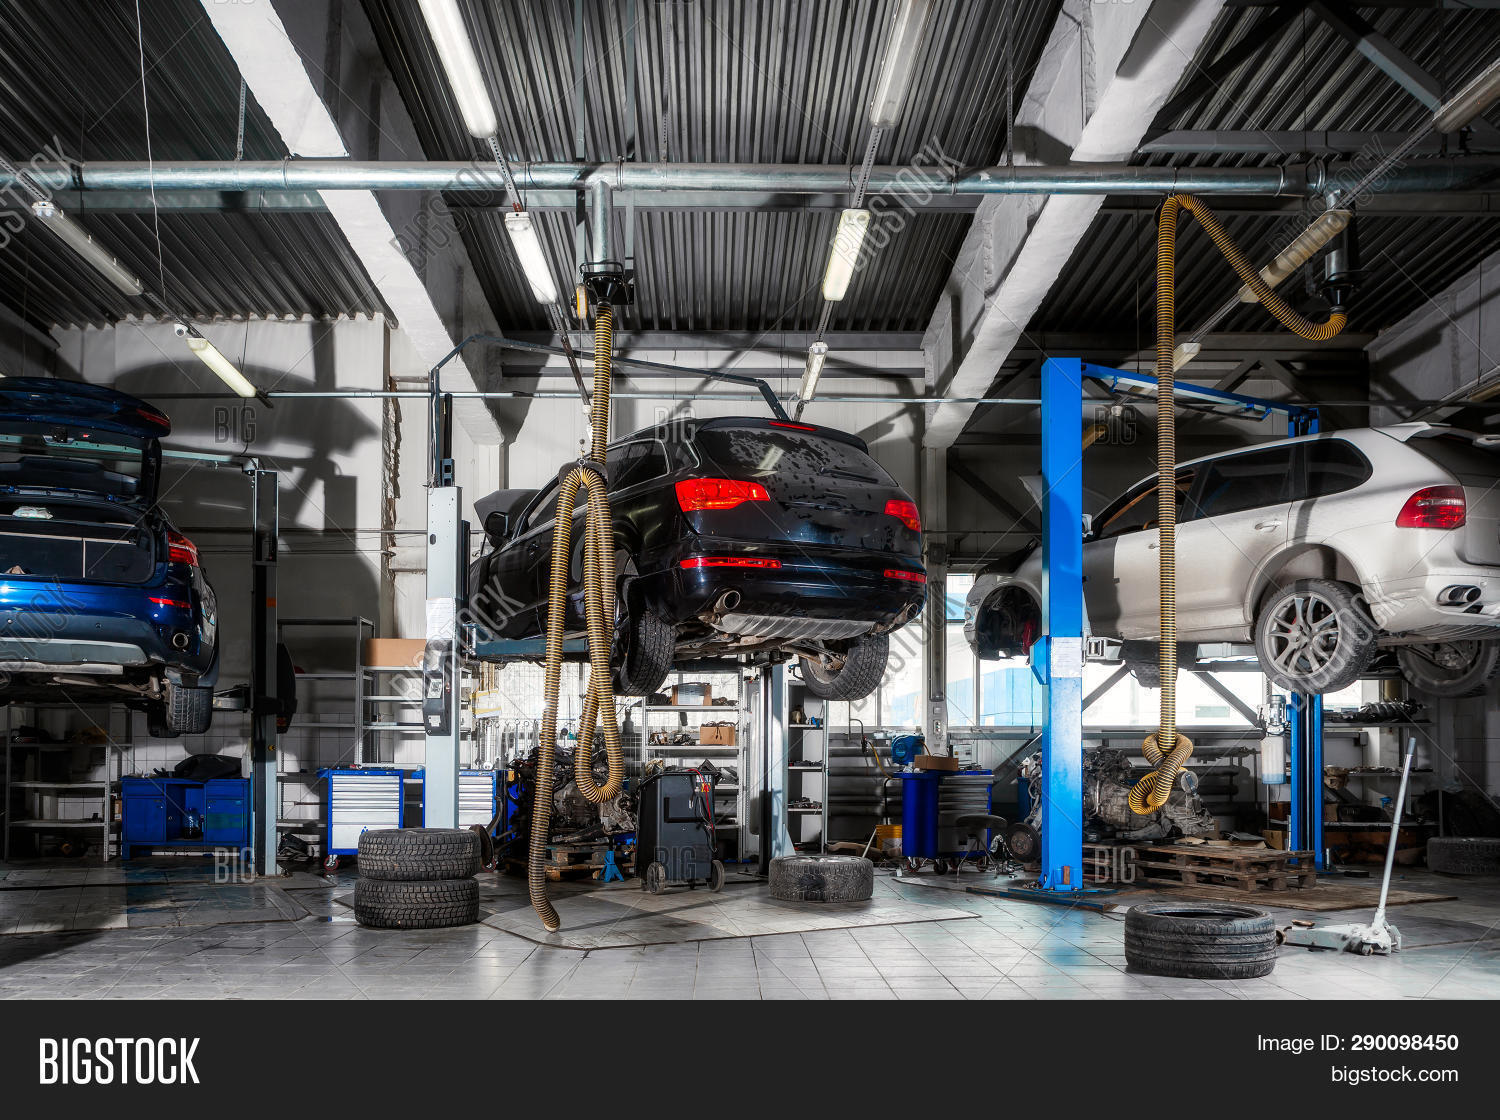 Car Repair On A Lift For The Repair Of The Chassis, Automatic Transmission And Engine In The Auto Re